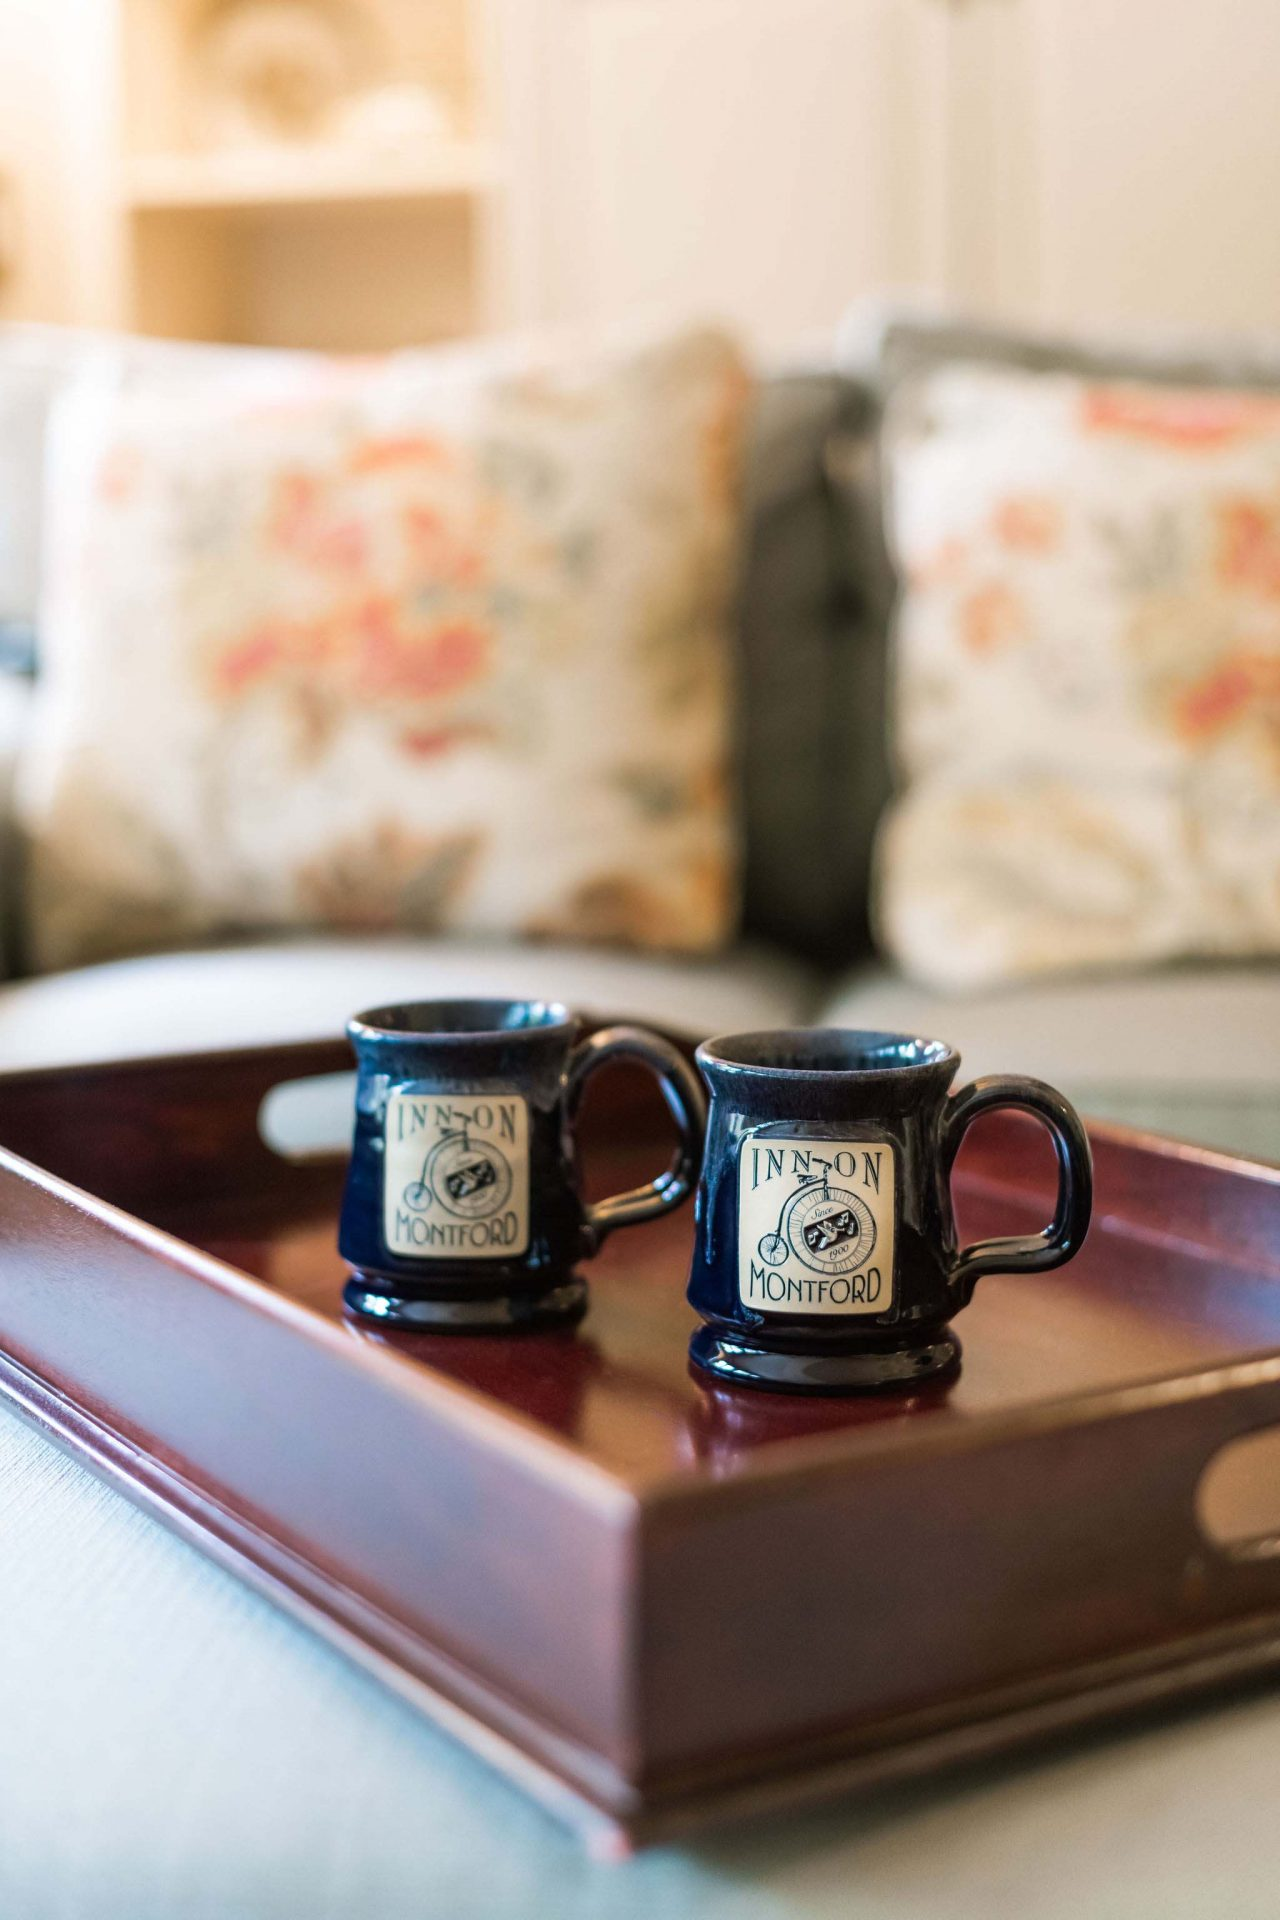 A wooden tray on a bed with two black mugs with the Inn on Montford logo.